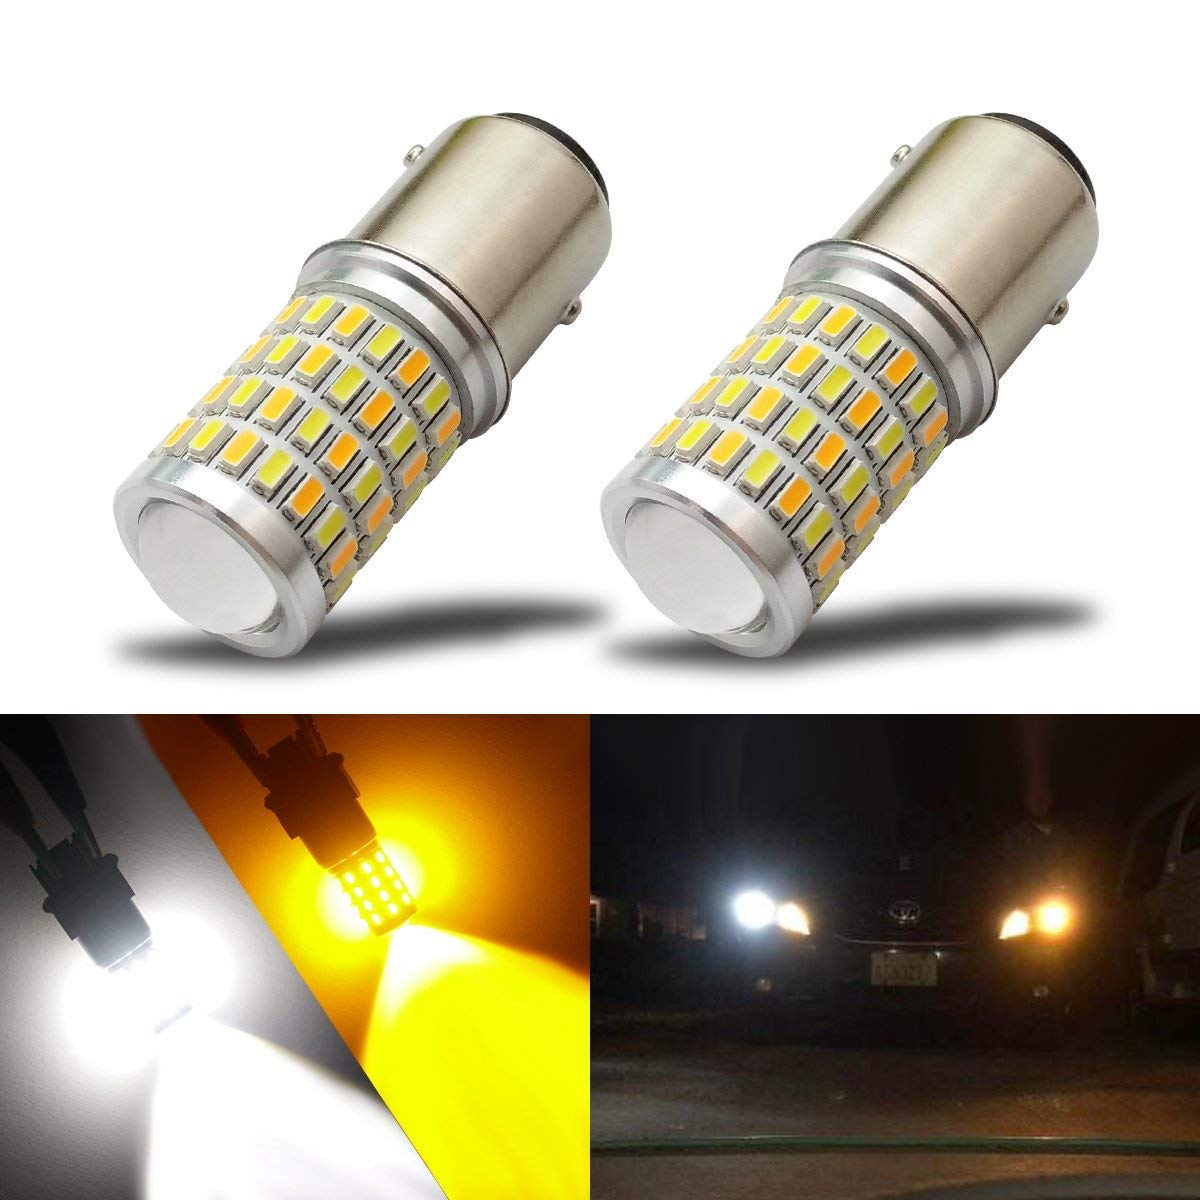 iBrightstar Newest Super Bright 1157 2057 2357 7528 BAY15D P21/5W Switchback LED Bulbs with Projector Replacement for Daytime Running Lights/DRL and Turn Signal Lights, White/Amber